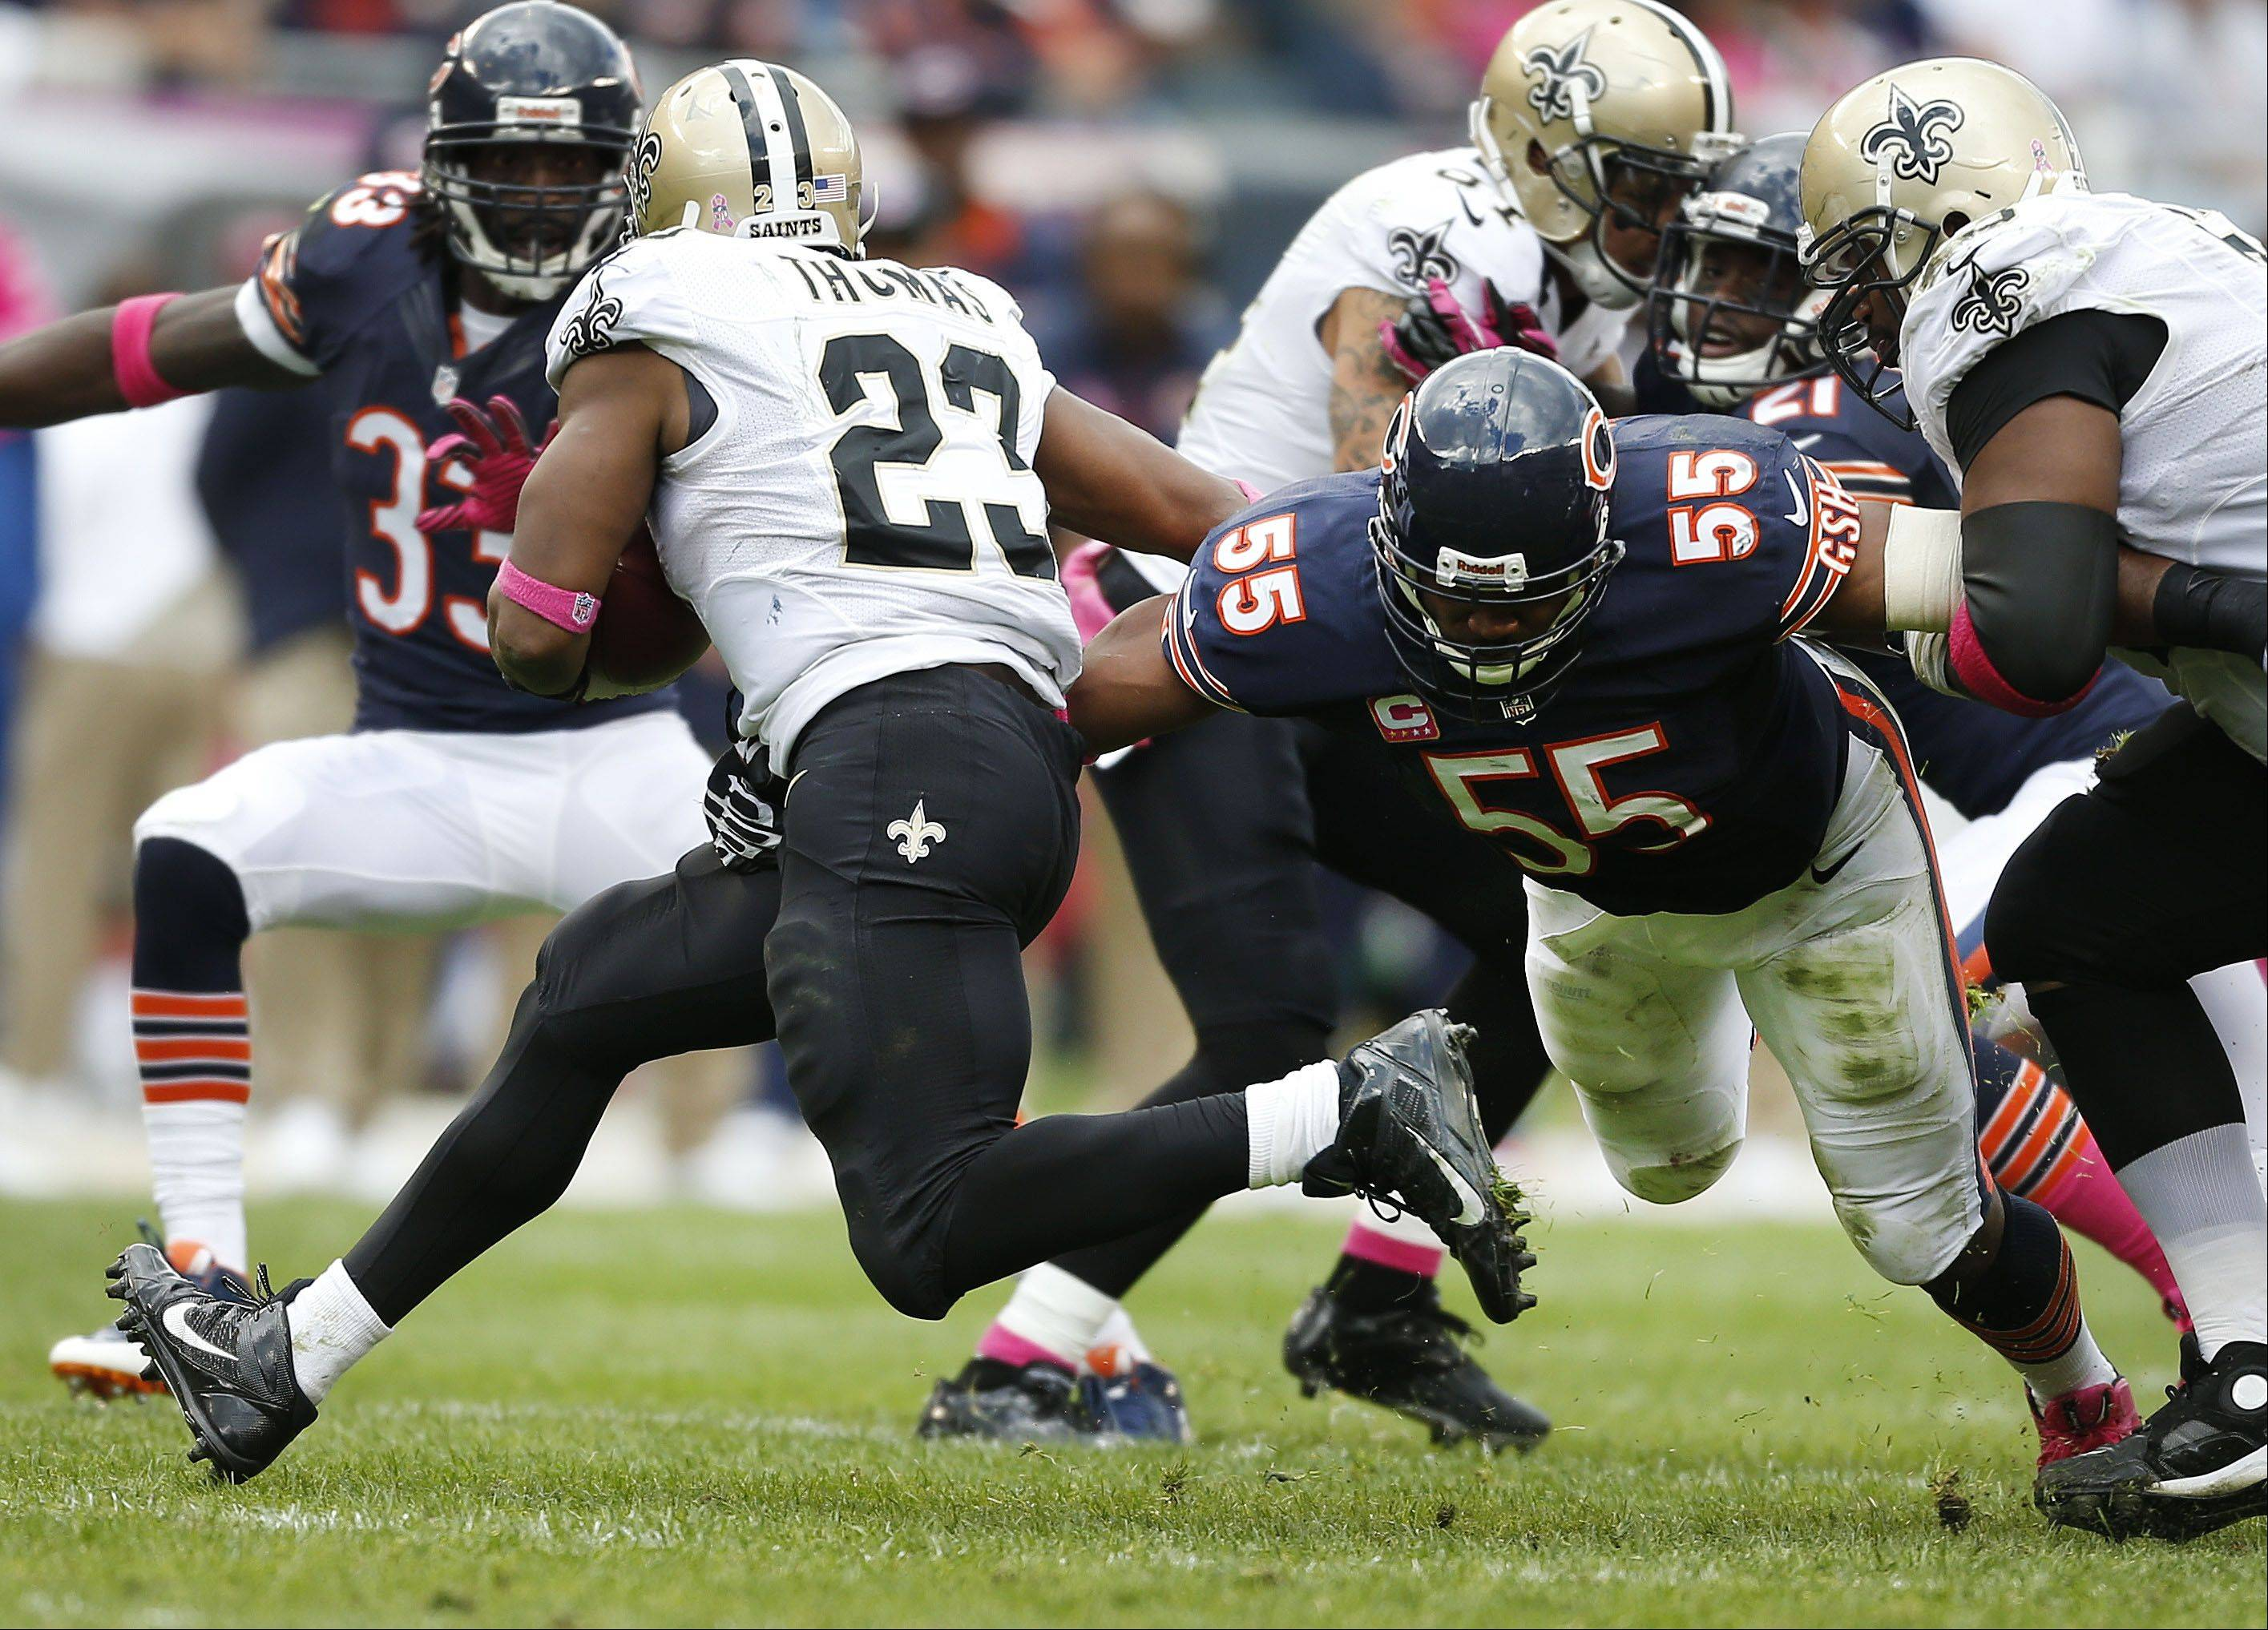 Chicago Bears outside linebacker Lance Briggs tries to wrap up New Orleans Saints running back Pierre Thomas during the Bears 26-18 loss to the New Orleans Saints.